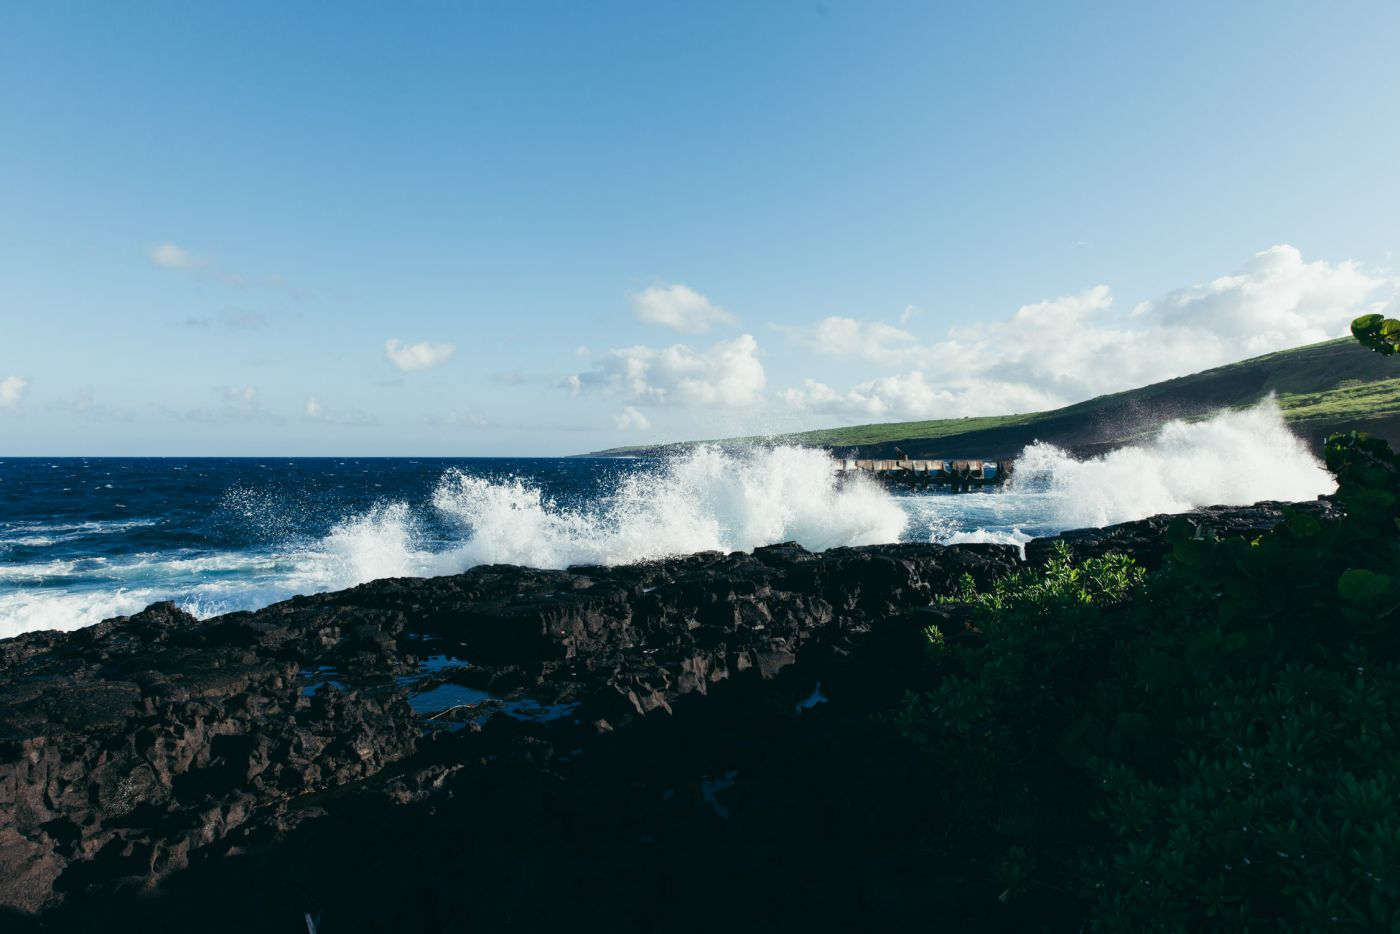 Whittington Beach Park and Honu'apo Bay, Big Island, Hawaii